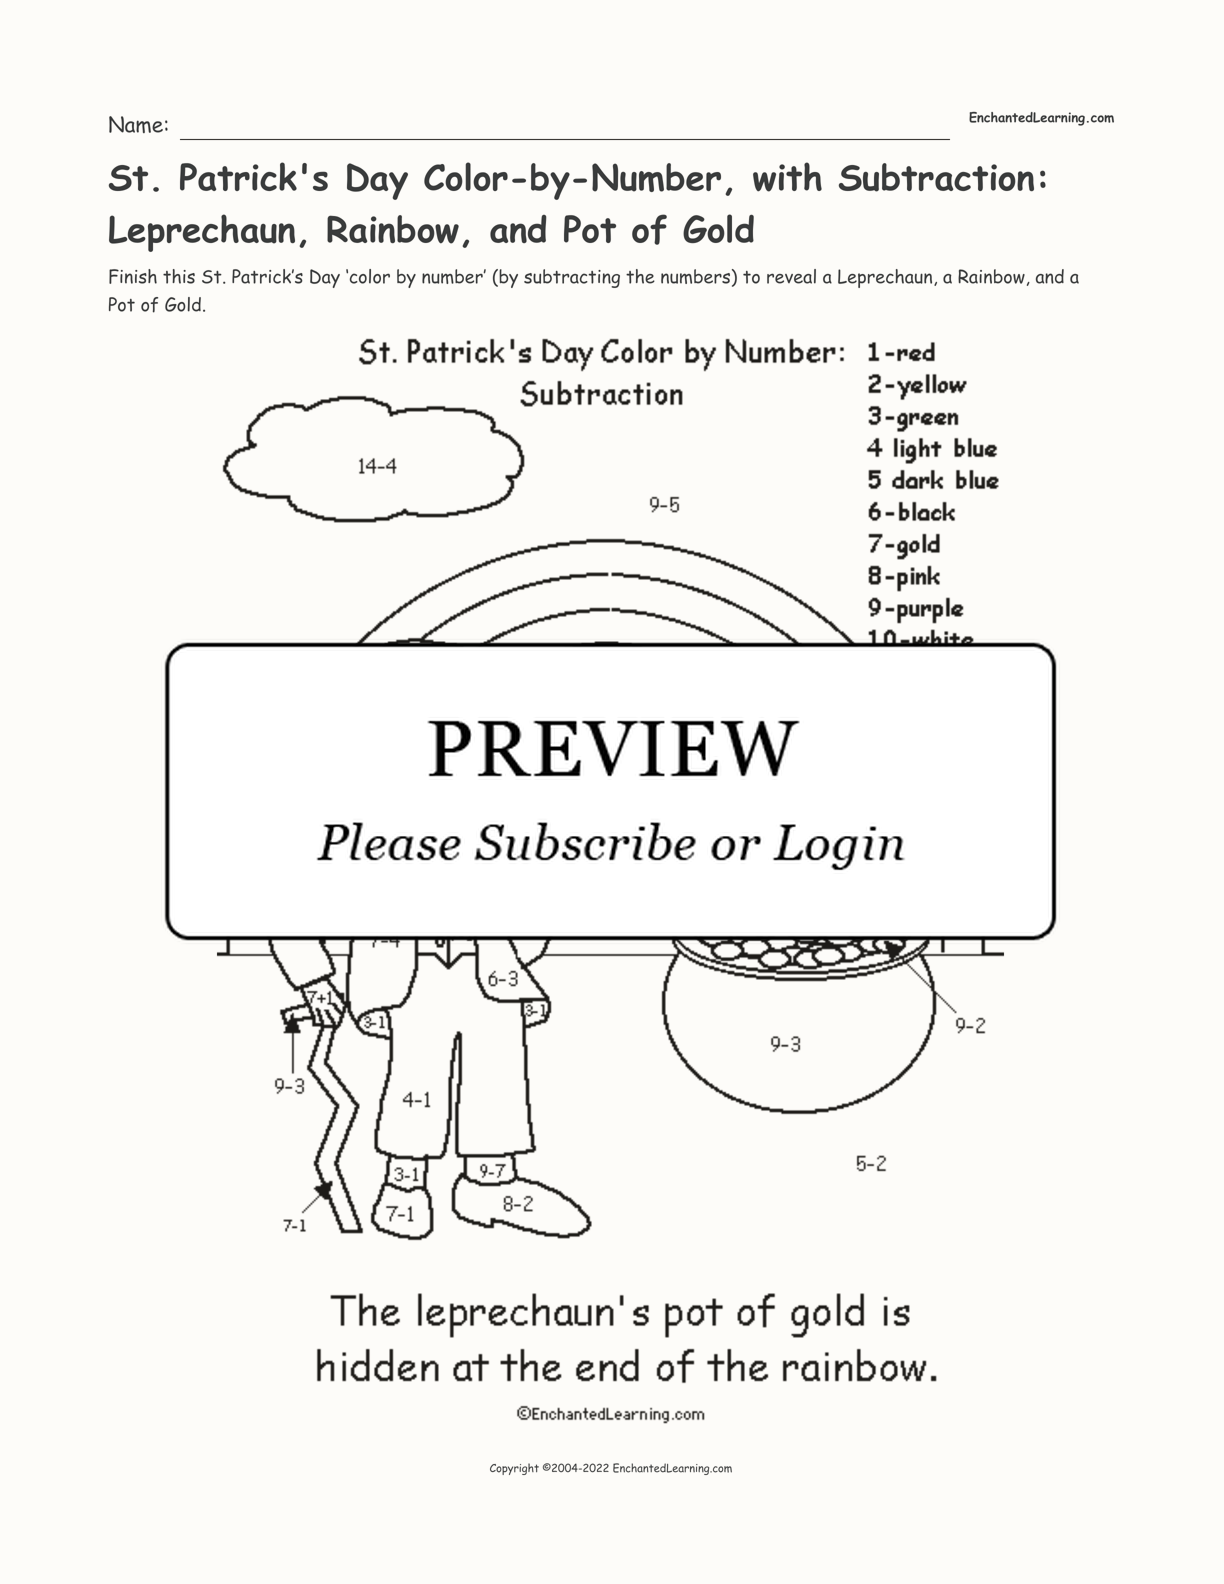 St. Patrick's Day Color-by-Number, with Subtraction: Leprechaun, Rainbow, and Pot of Gold interactive printout page 1